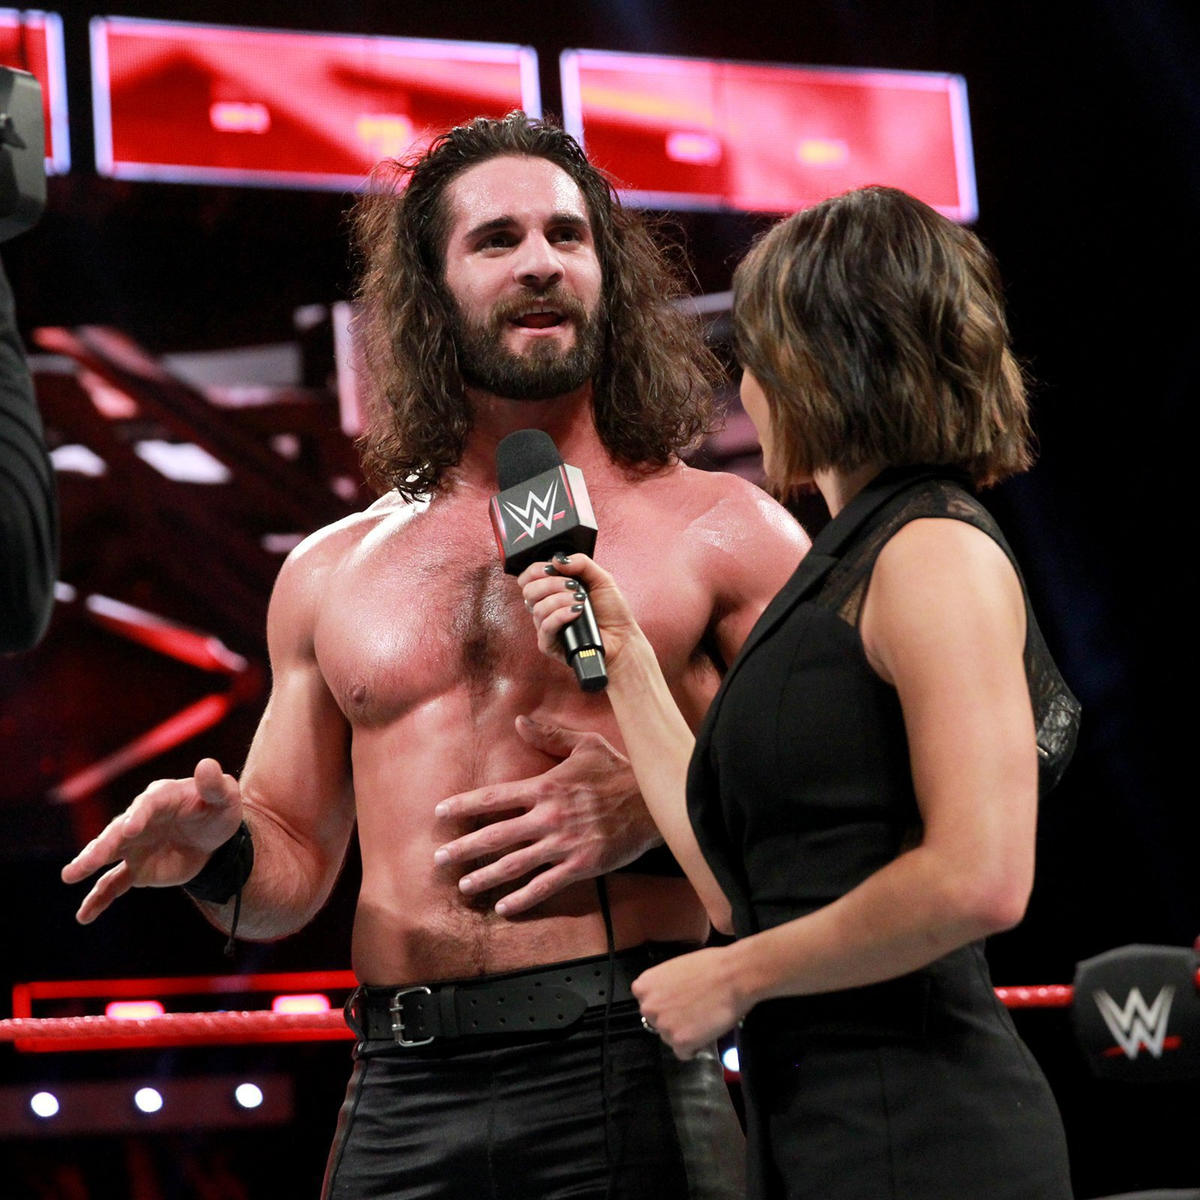 ... and that he and Dean Ambrose will be getting their rematch next week against The Bar for the Raw Tag Team Championship!